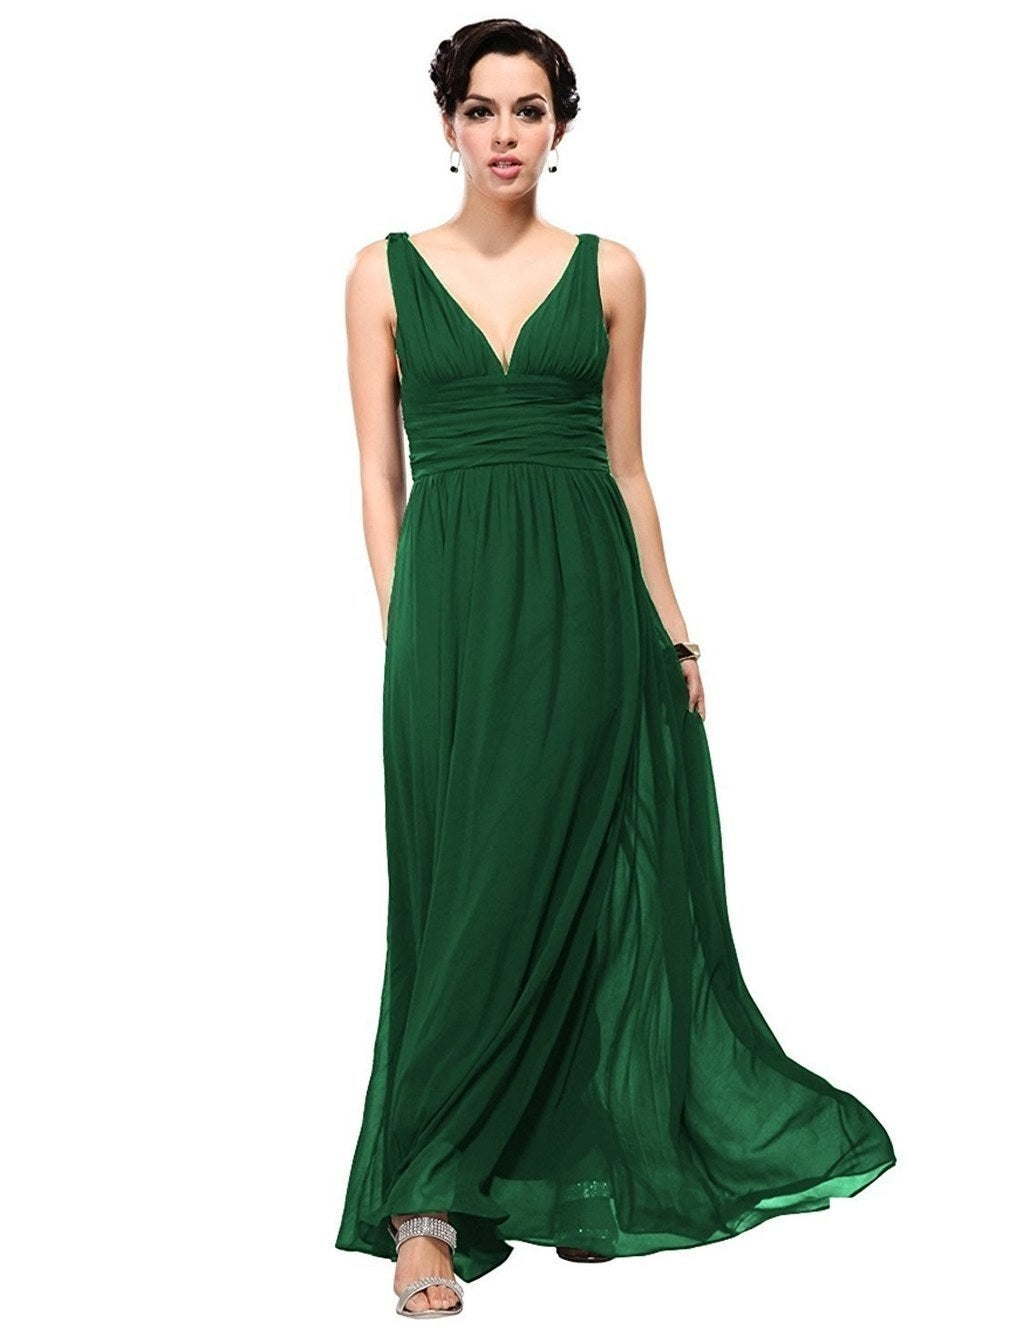 20 bridesmaid dresses you can get on amazon that your friends will a sleeveless dress that has answered your help me im poor prayers ombrellifo Gallery